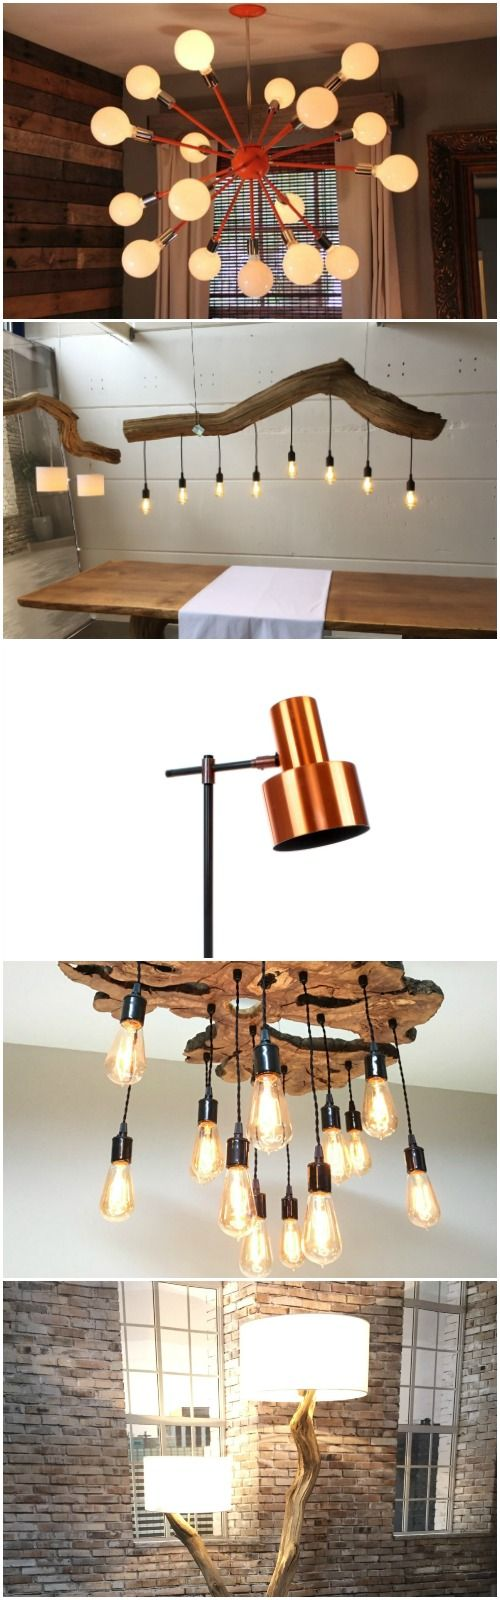 5 Lamps Under 1000 We Would Buy